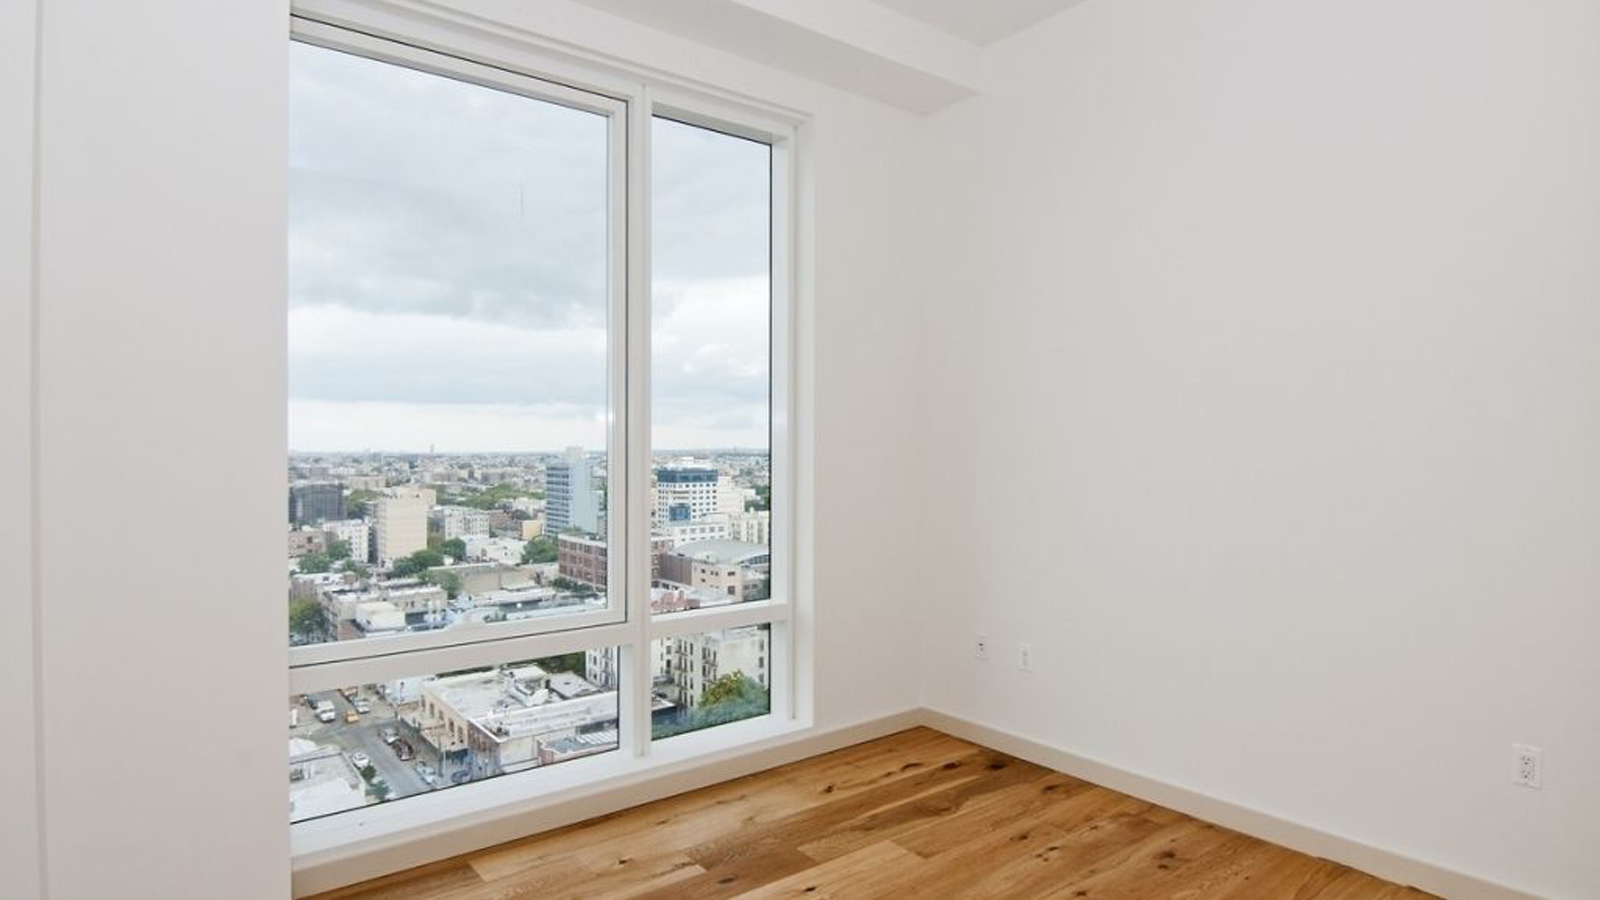 Q41, 23-10 41st Avenue, NYC - Rental Apartments | CityRealty on